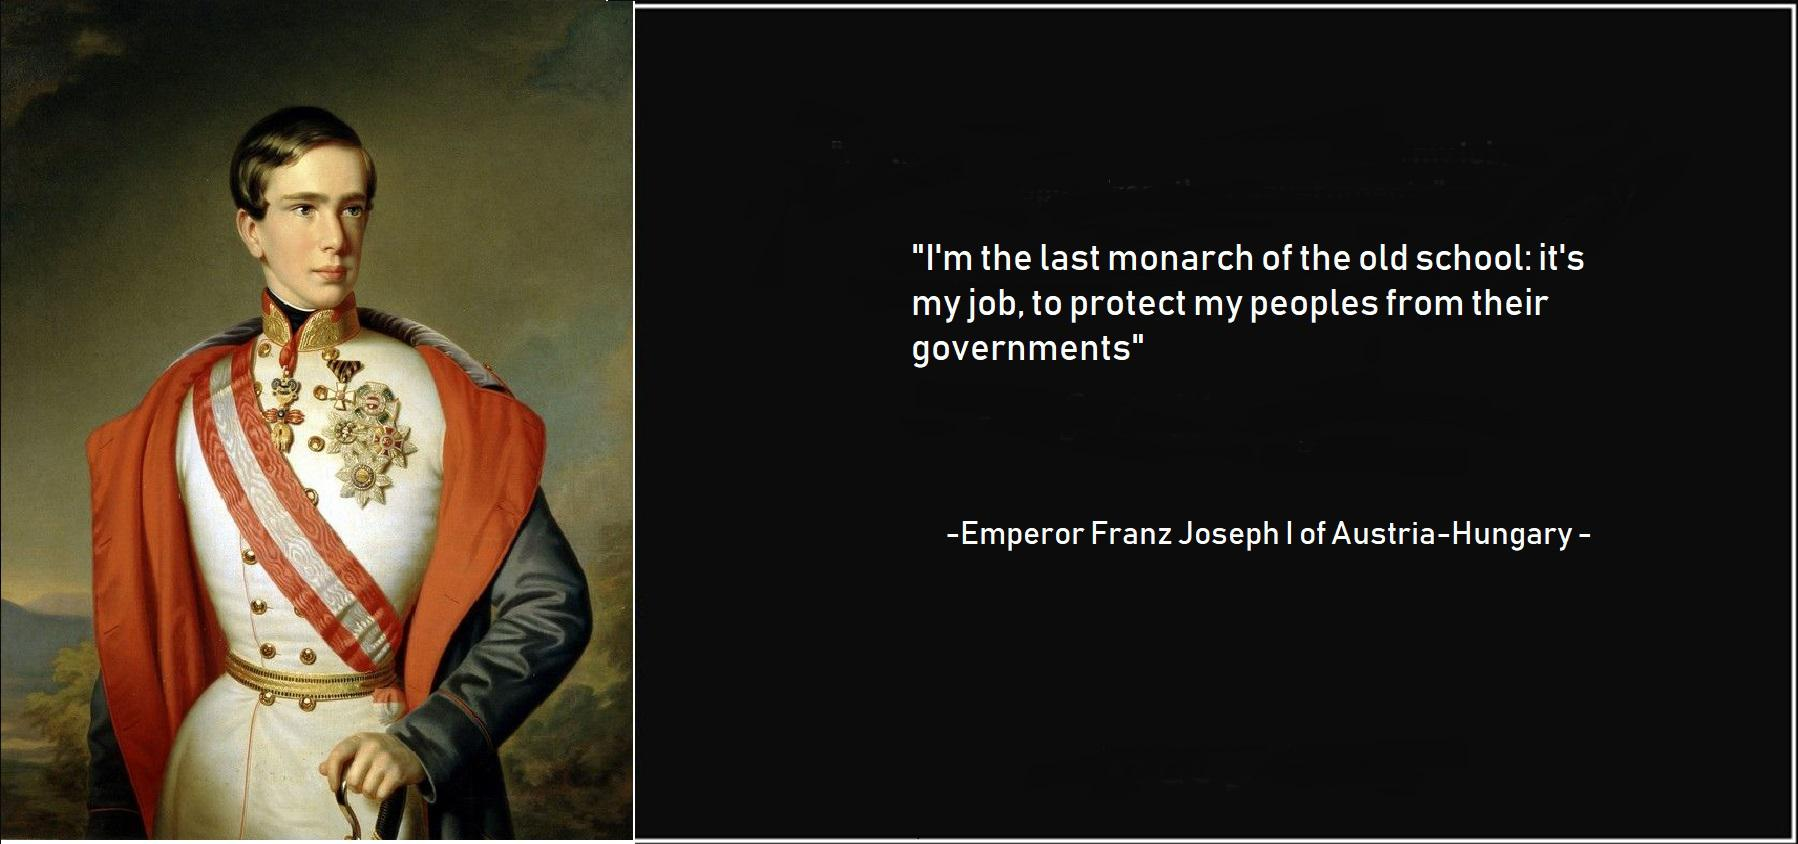 """I'm the last monarch of the old school: it's my job, to protect my peoples from their governments"" -Emperor Franz Joseph I of Austria-Hungary [1798 x 844]"